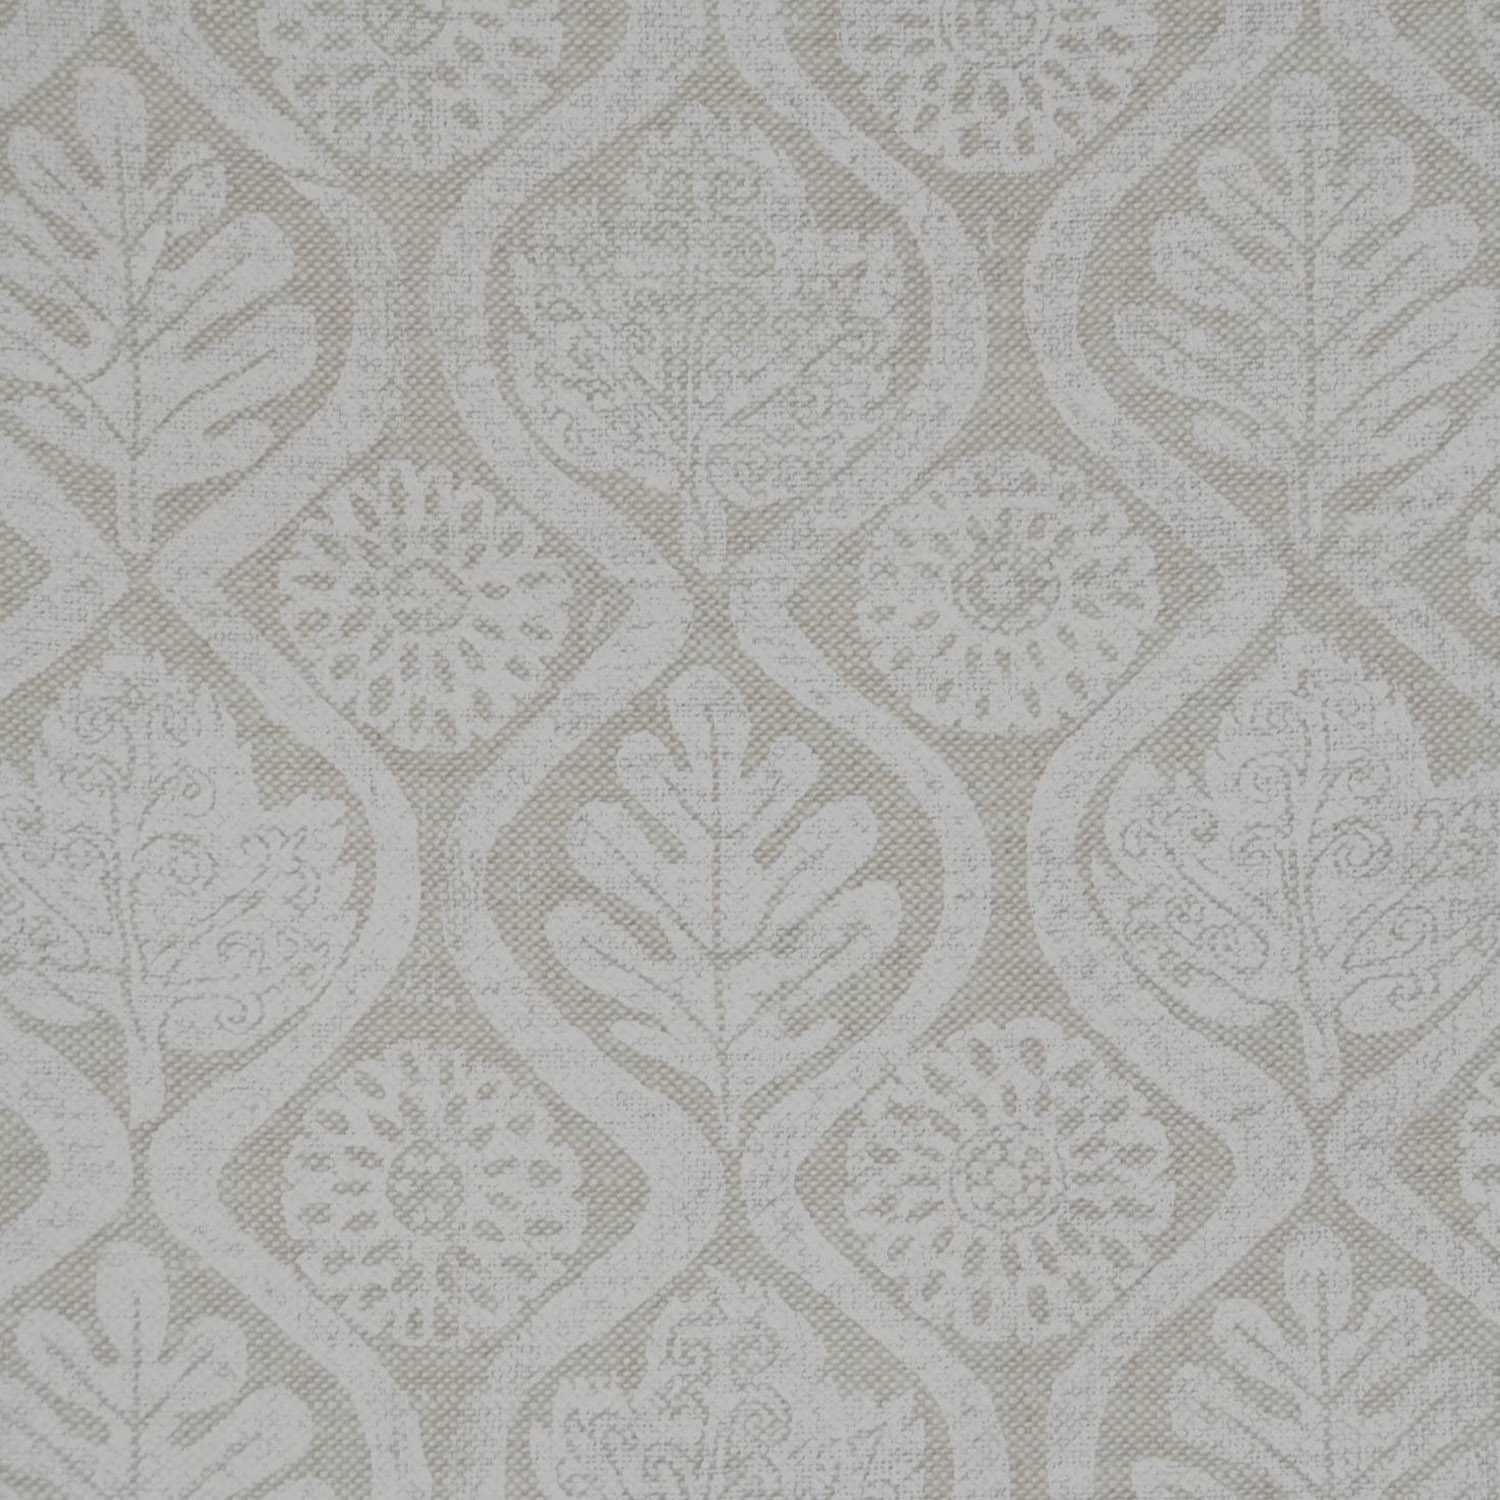 <p><strong>OAKLEAVES</strong>off white/oatmeal 6300-05<a href=/the-peggy-angus-collection/oakleaves-off-white-6300-05>More →</a></p>